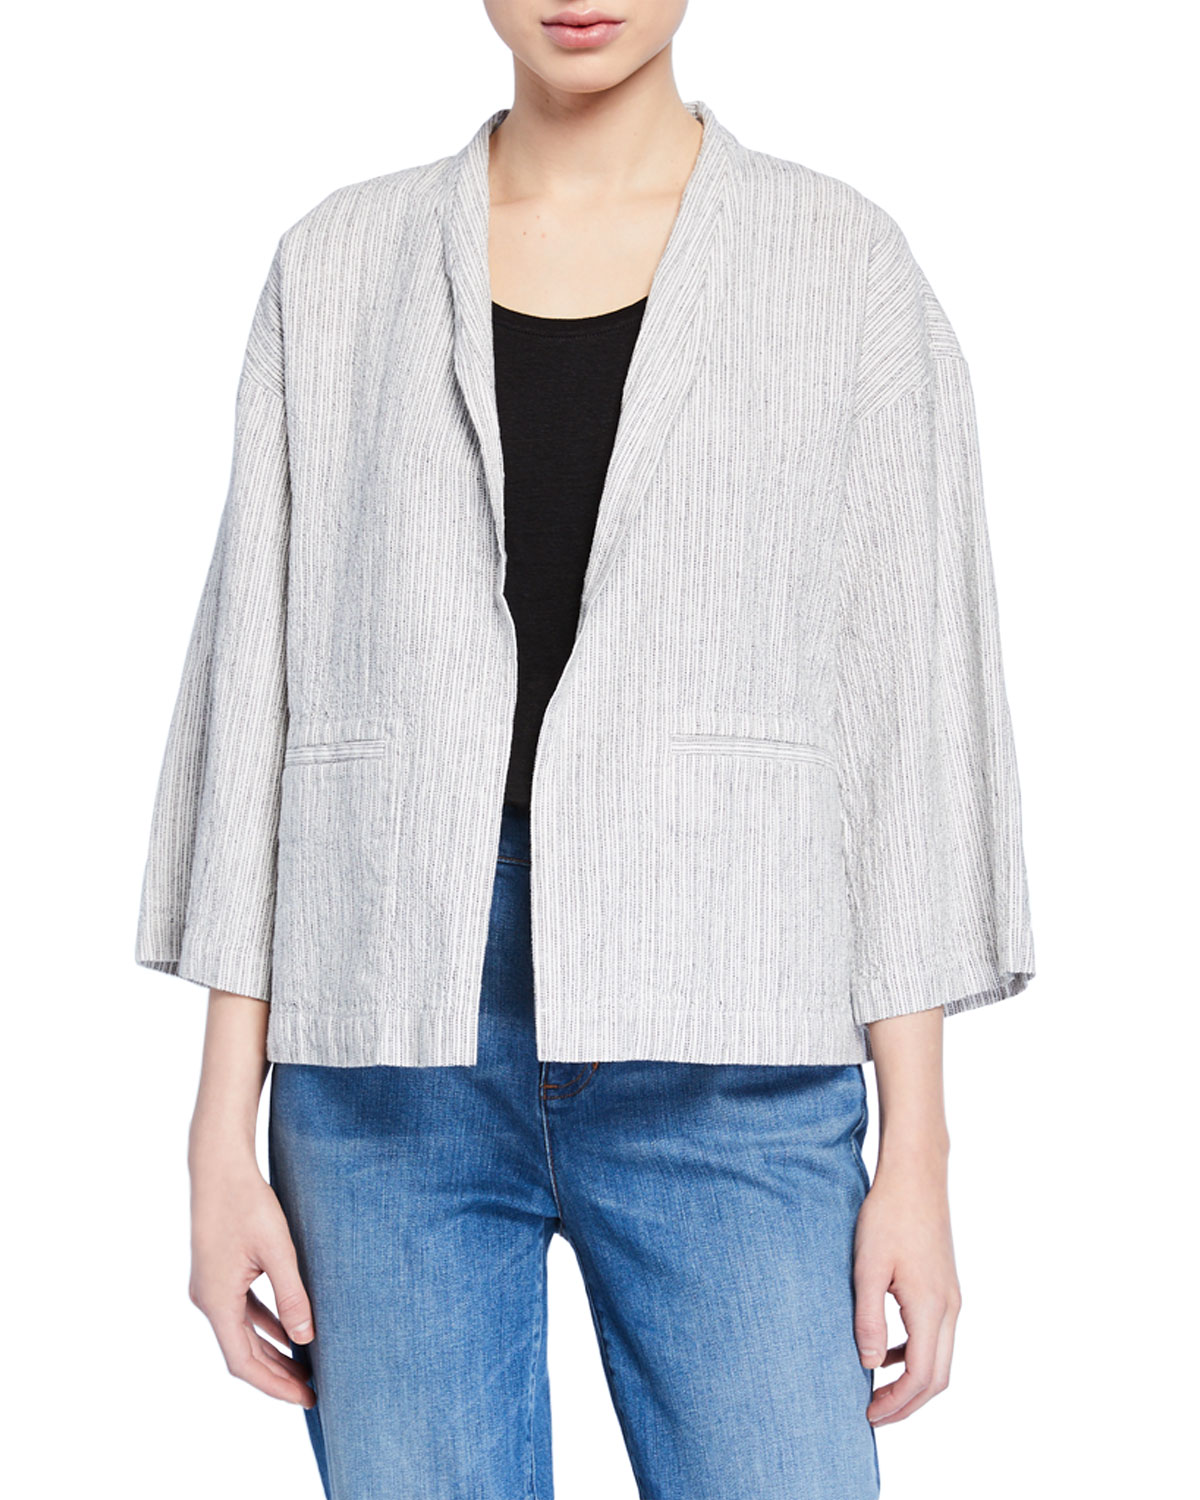 Eileen Fisher Jackets PLUS SIZE TICKING STRIPE OPEN-FRONT ORGANIC LINEN/COTTON JACKET